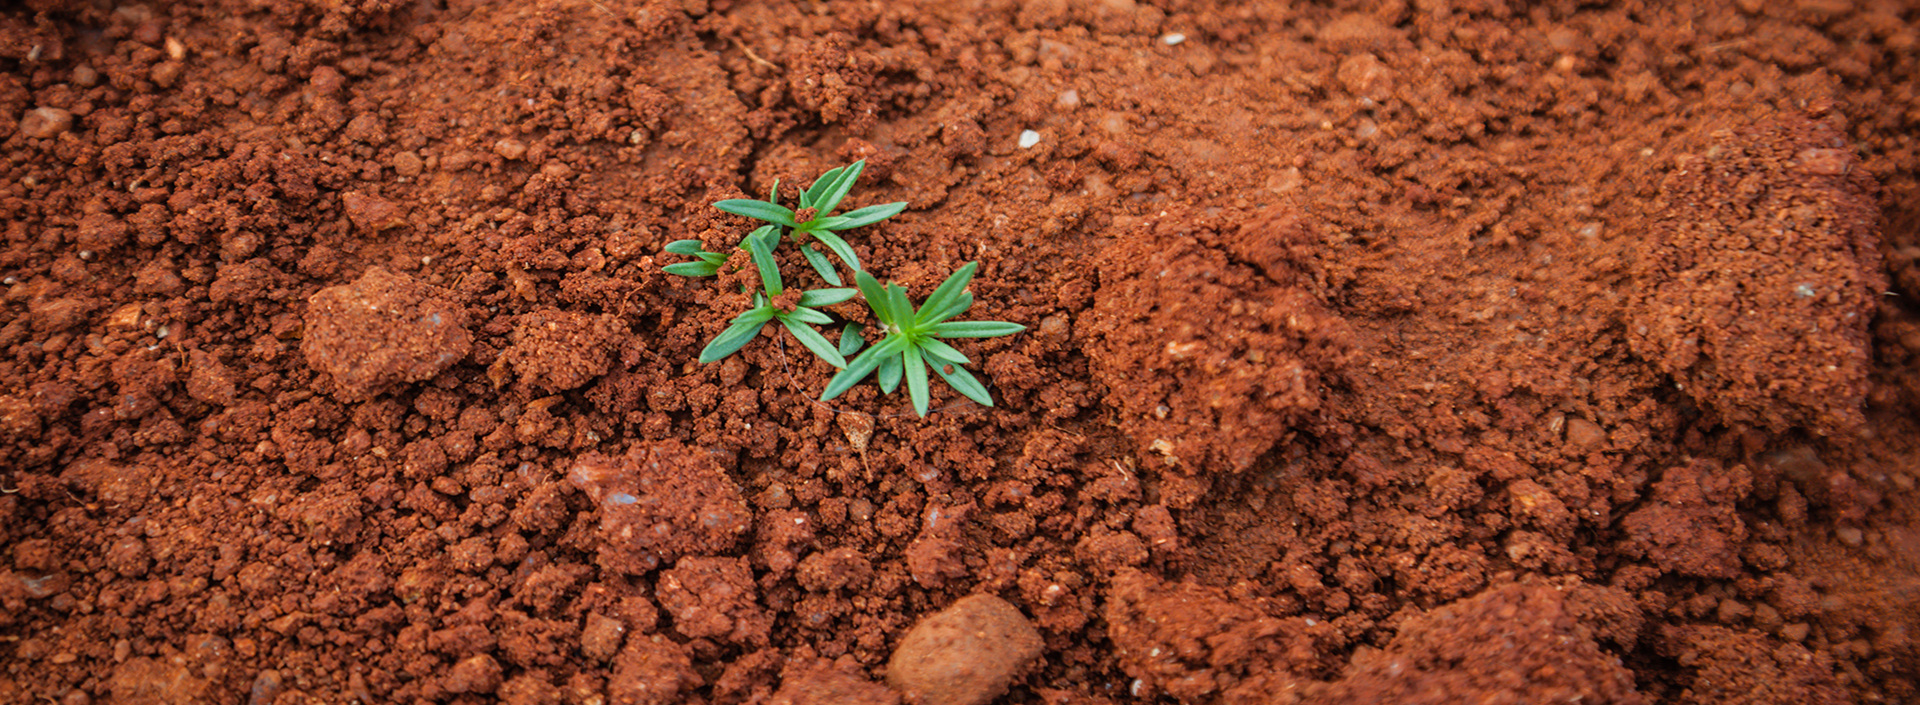 red soil with plant growth illustrating soil texture